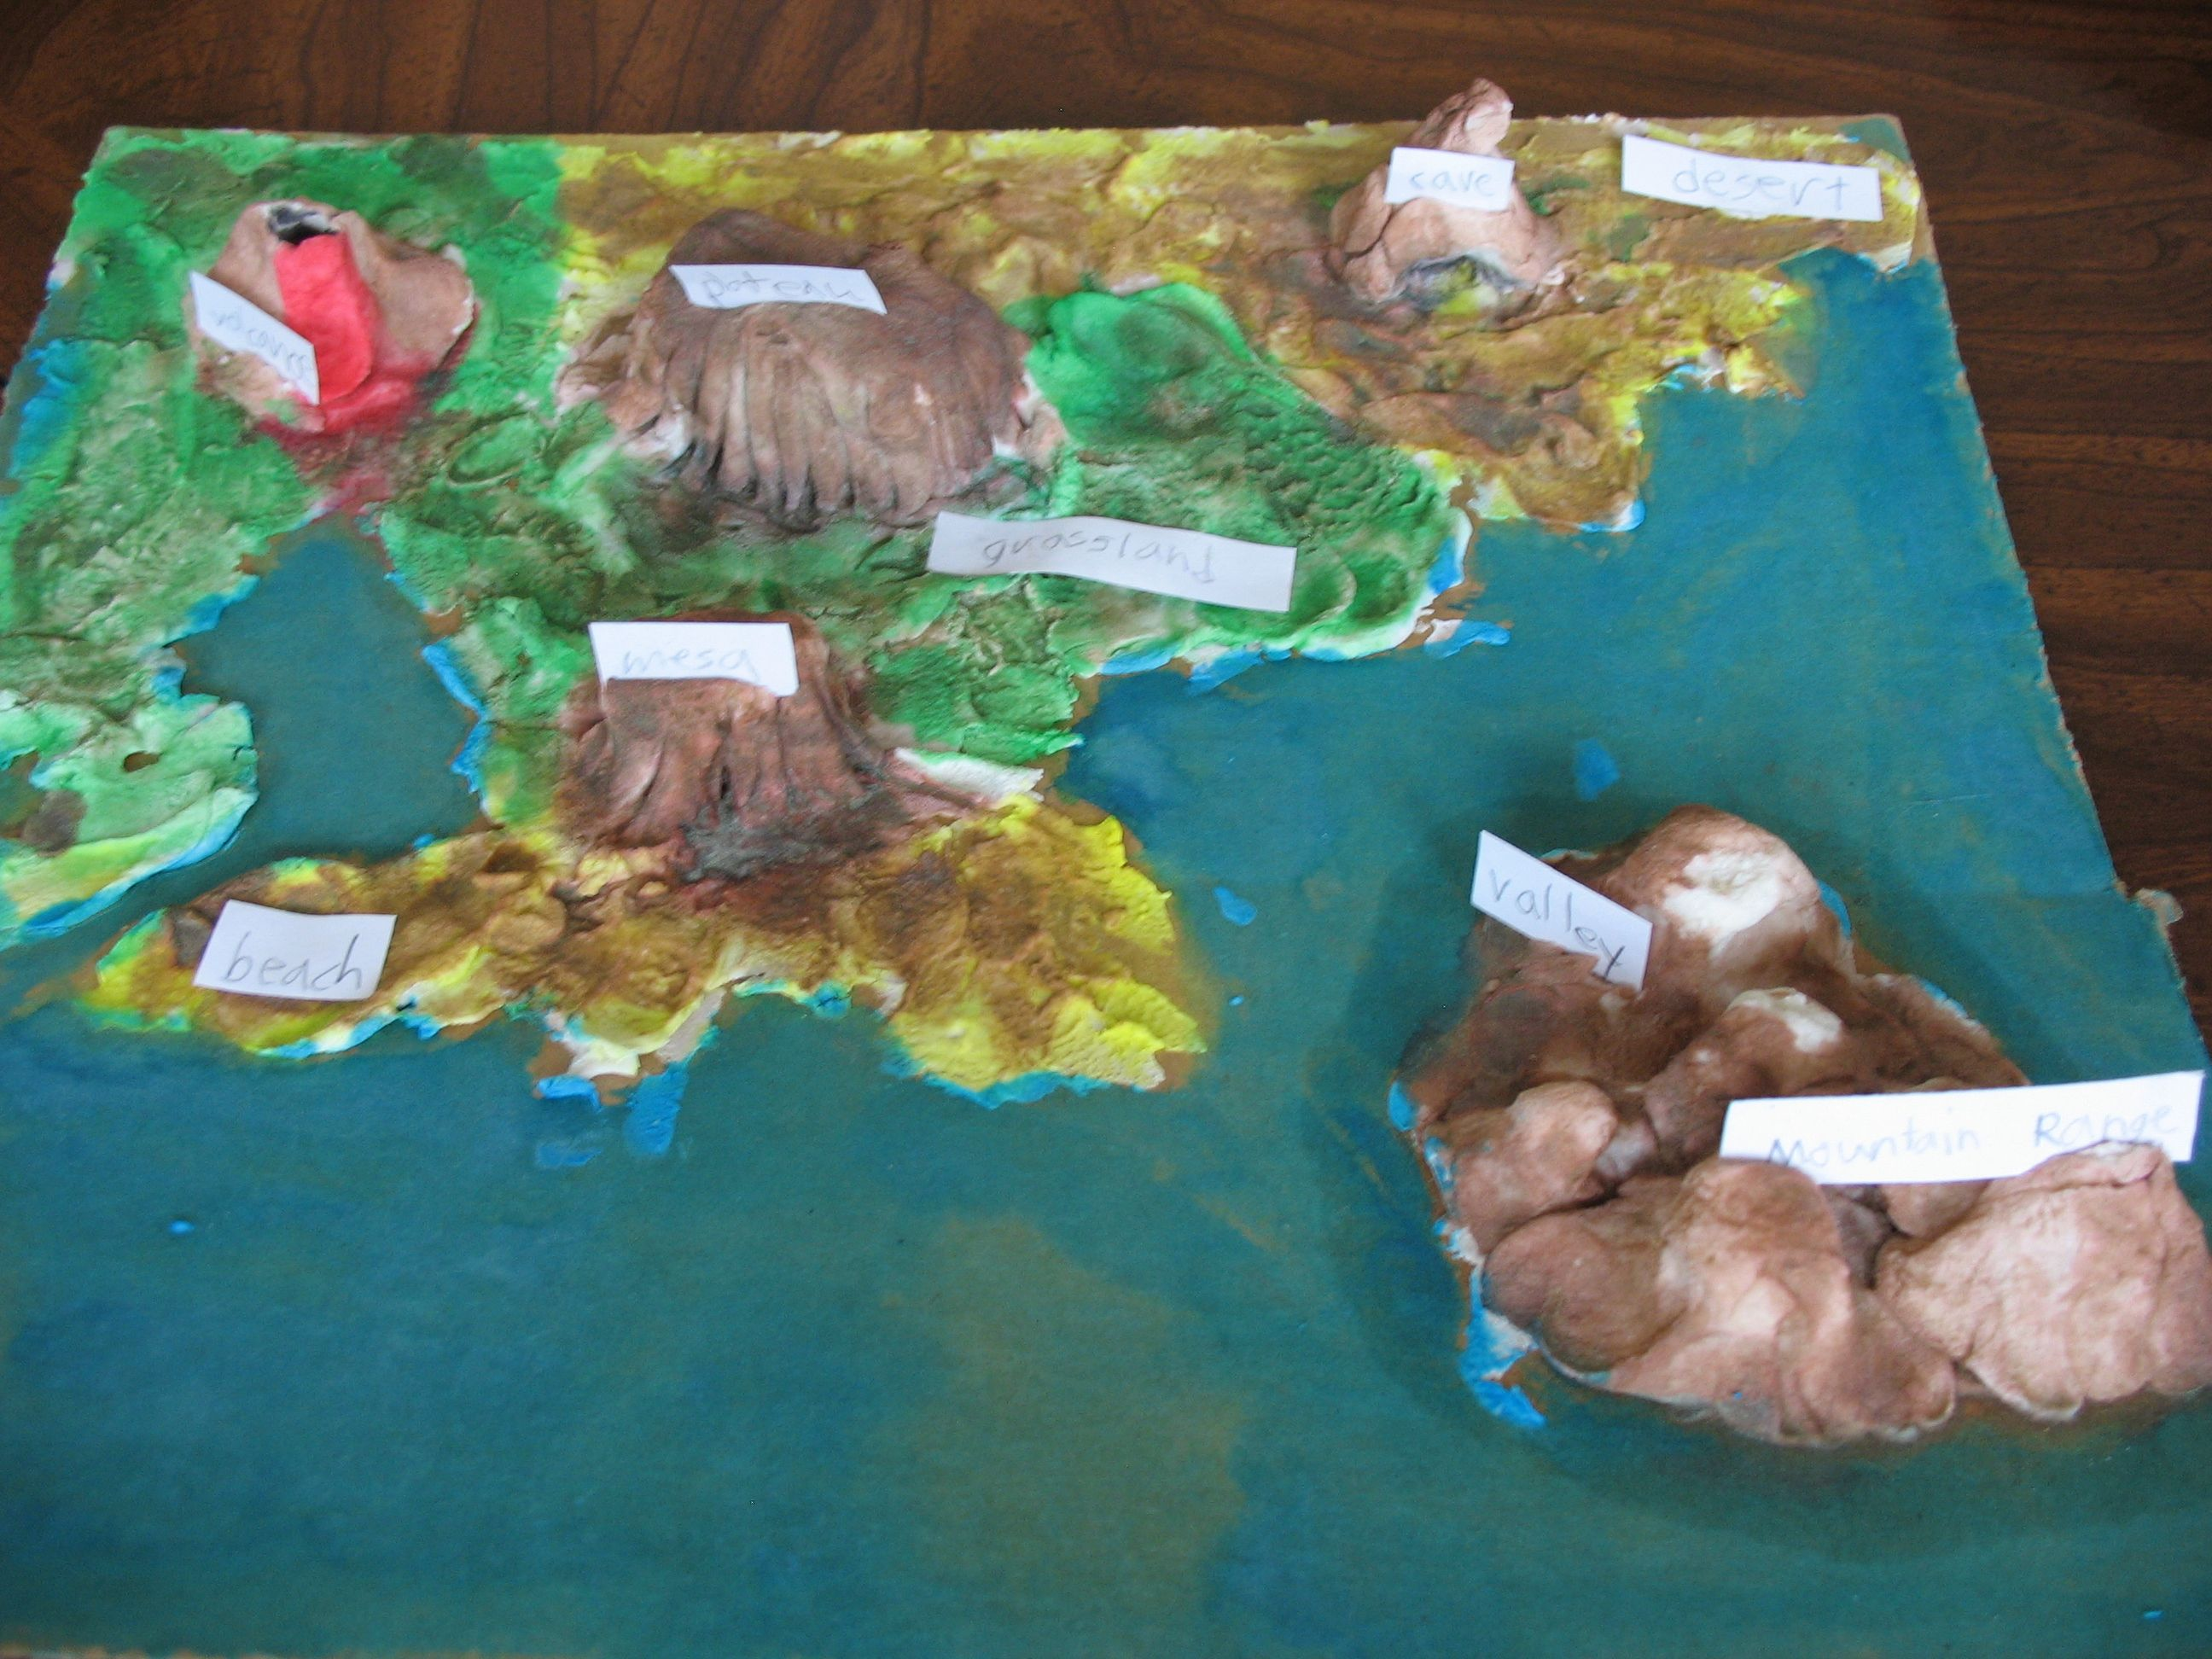 E D C C E C A D B Map Activities For Second Grade Second Grade Geography additionally Original also D B C B B Fe B Ee moreover Ffa Bf Ada C E De Dbf Bd Cardinal Directions Map Activities together with Snake River Gorge. on landforms for kids activities